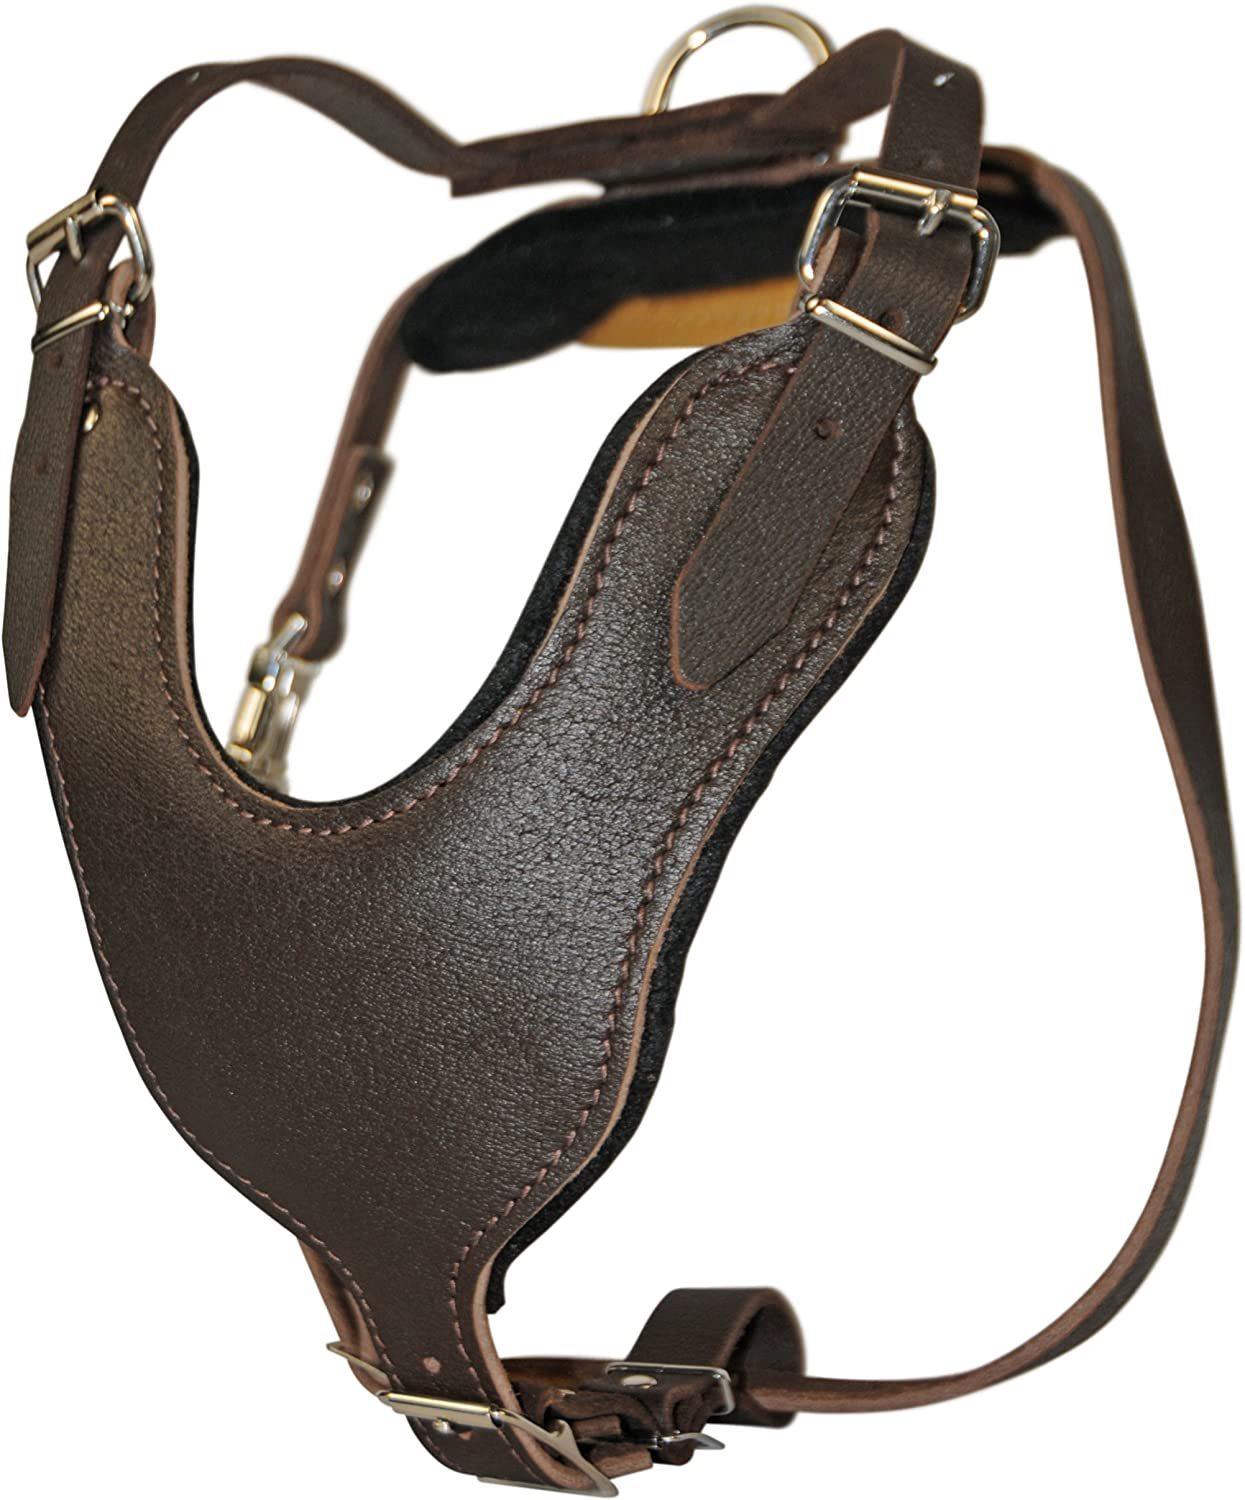 Dean and Tyler Basic Solid Nickel Hardware Leather Dog Harness, Brown, Large, Fits Girth Size  31Inch to 41Inch